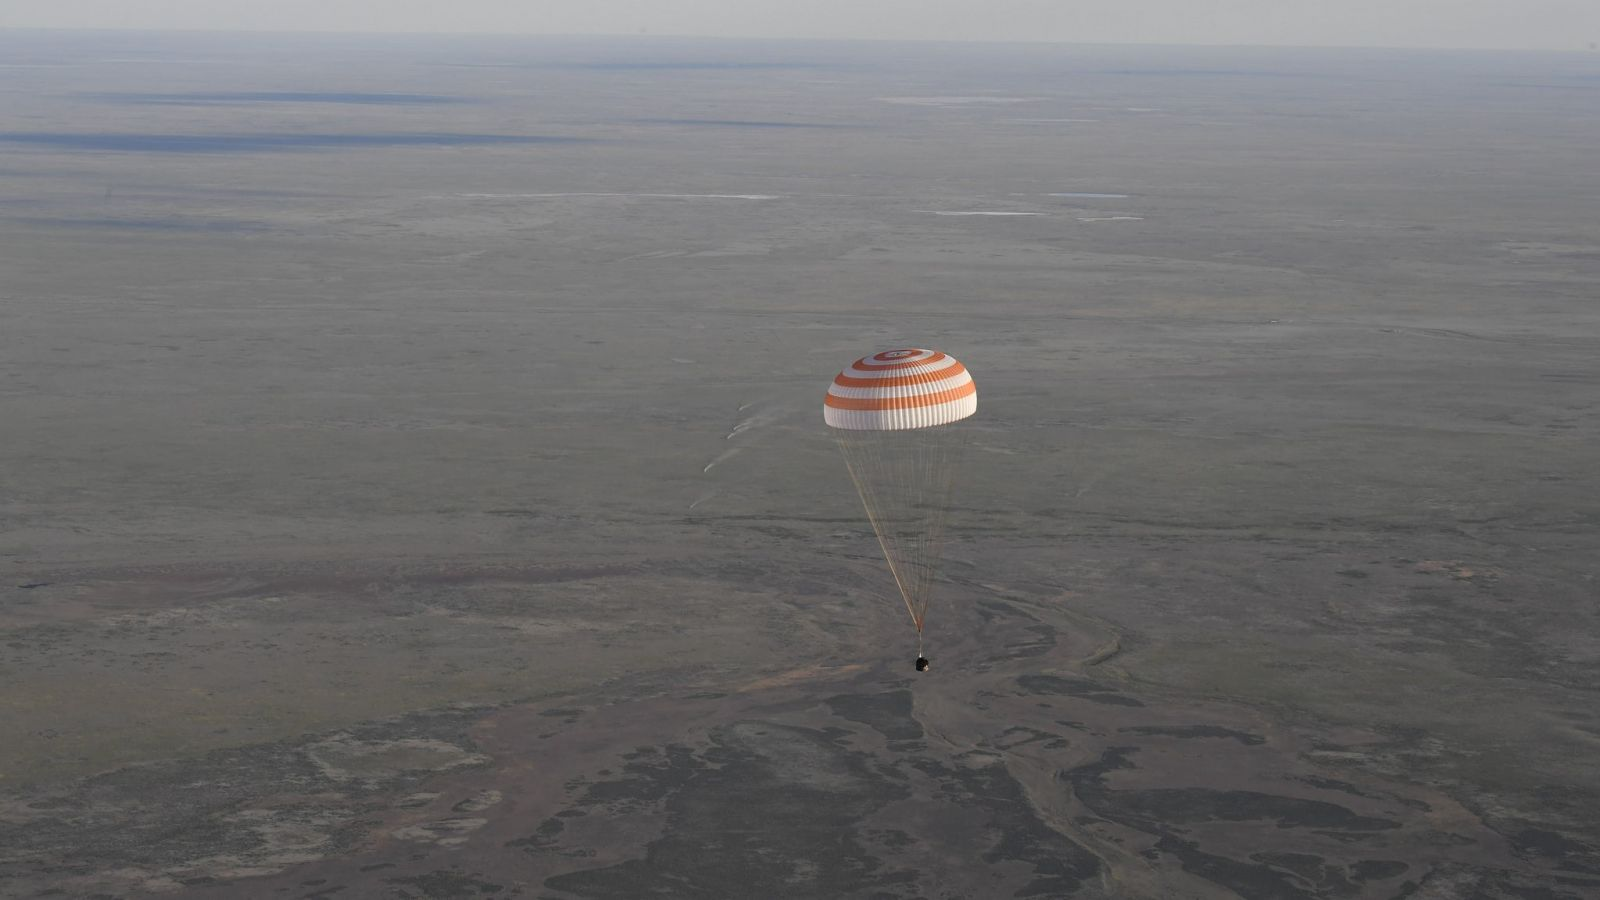 A Soyuz MS capsule descends toward the ground at the Kazakh Steppe. Two members of the Expedition 51 crew returned to Earth on June 2, 2017. Photo Credit: Stephane Corvaja / ESA